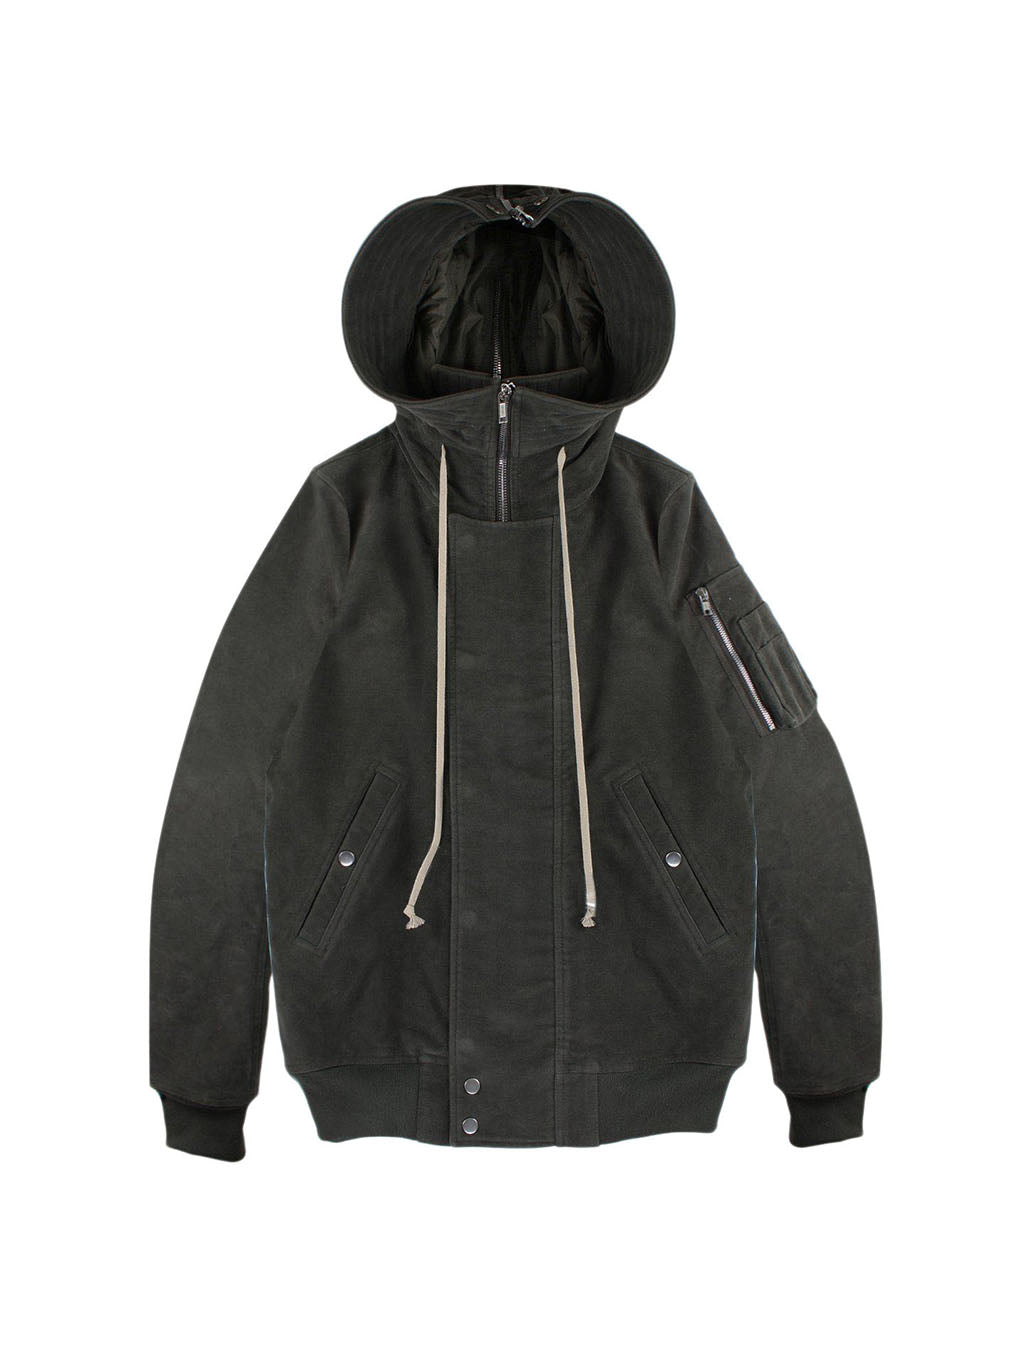 Black Hooded Short Bomber Jacket